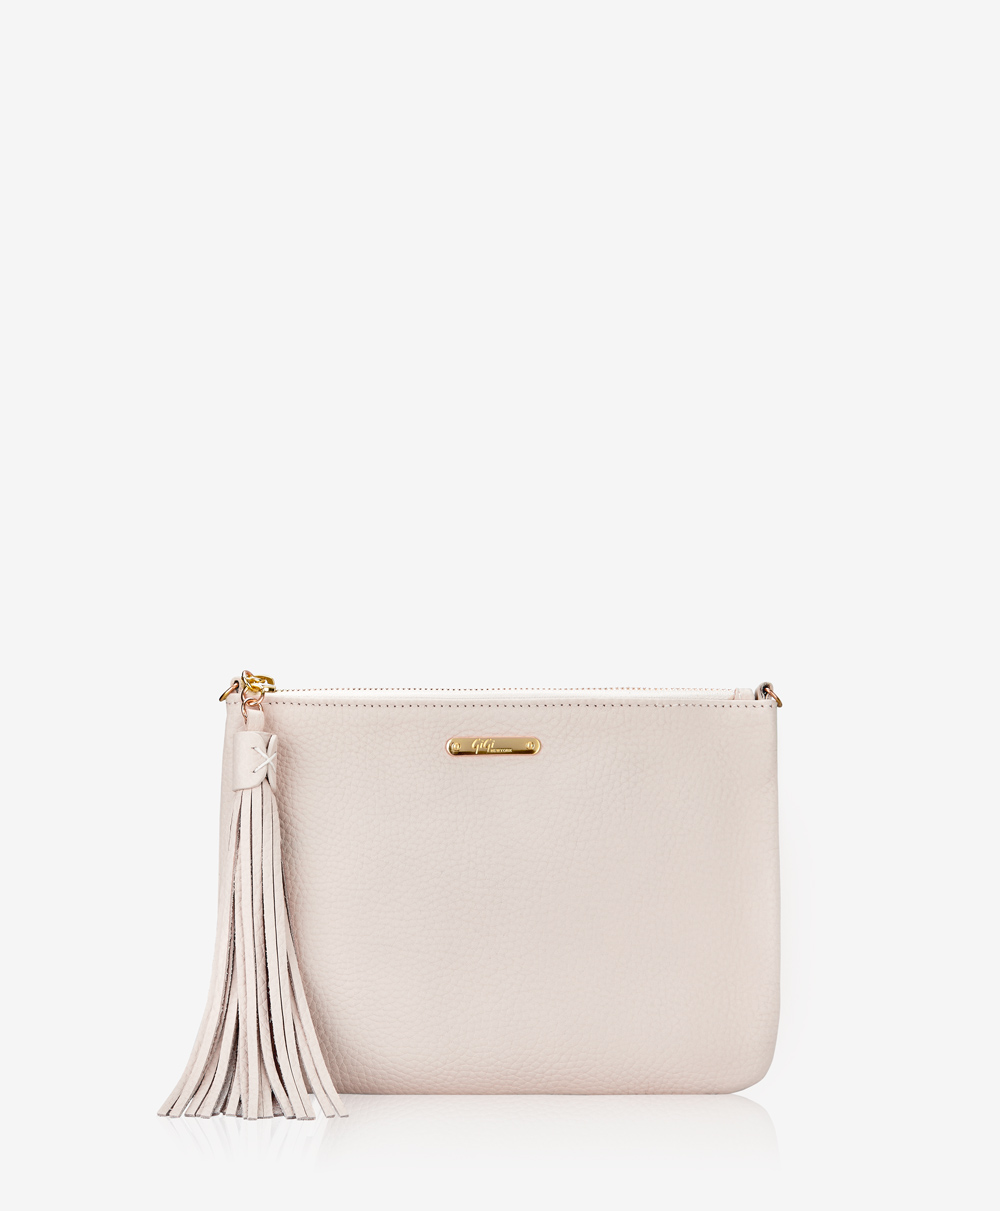 Chelsea Clutch Ivory Pebble Grain OBT-TIM-IVY